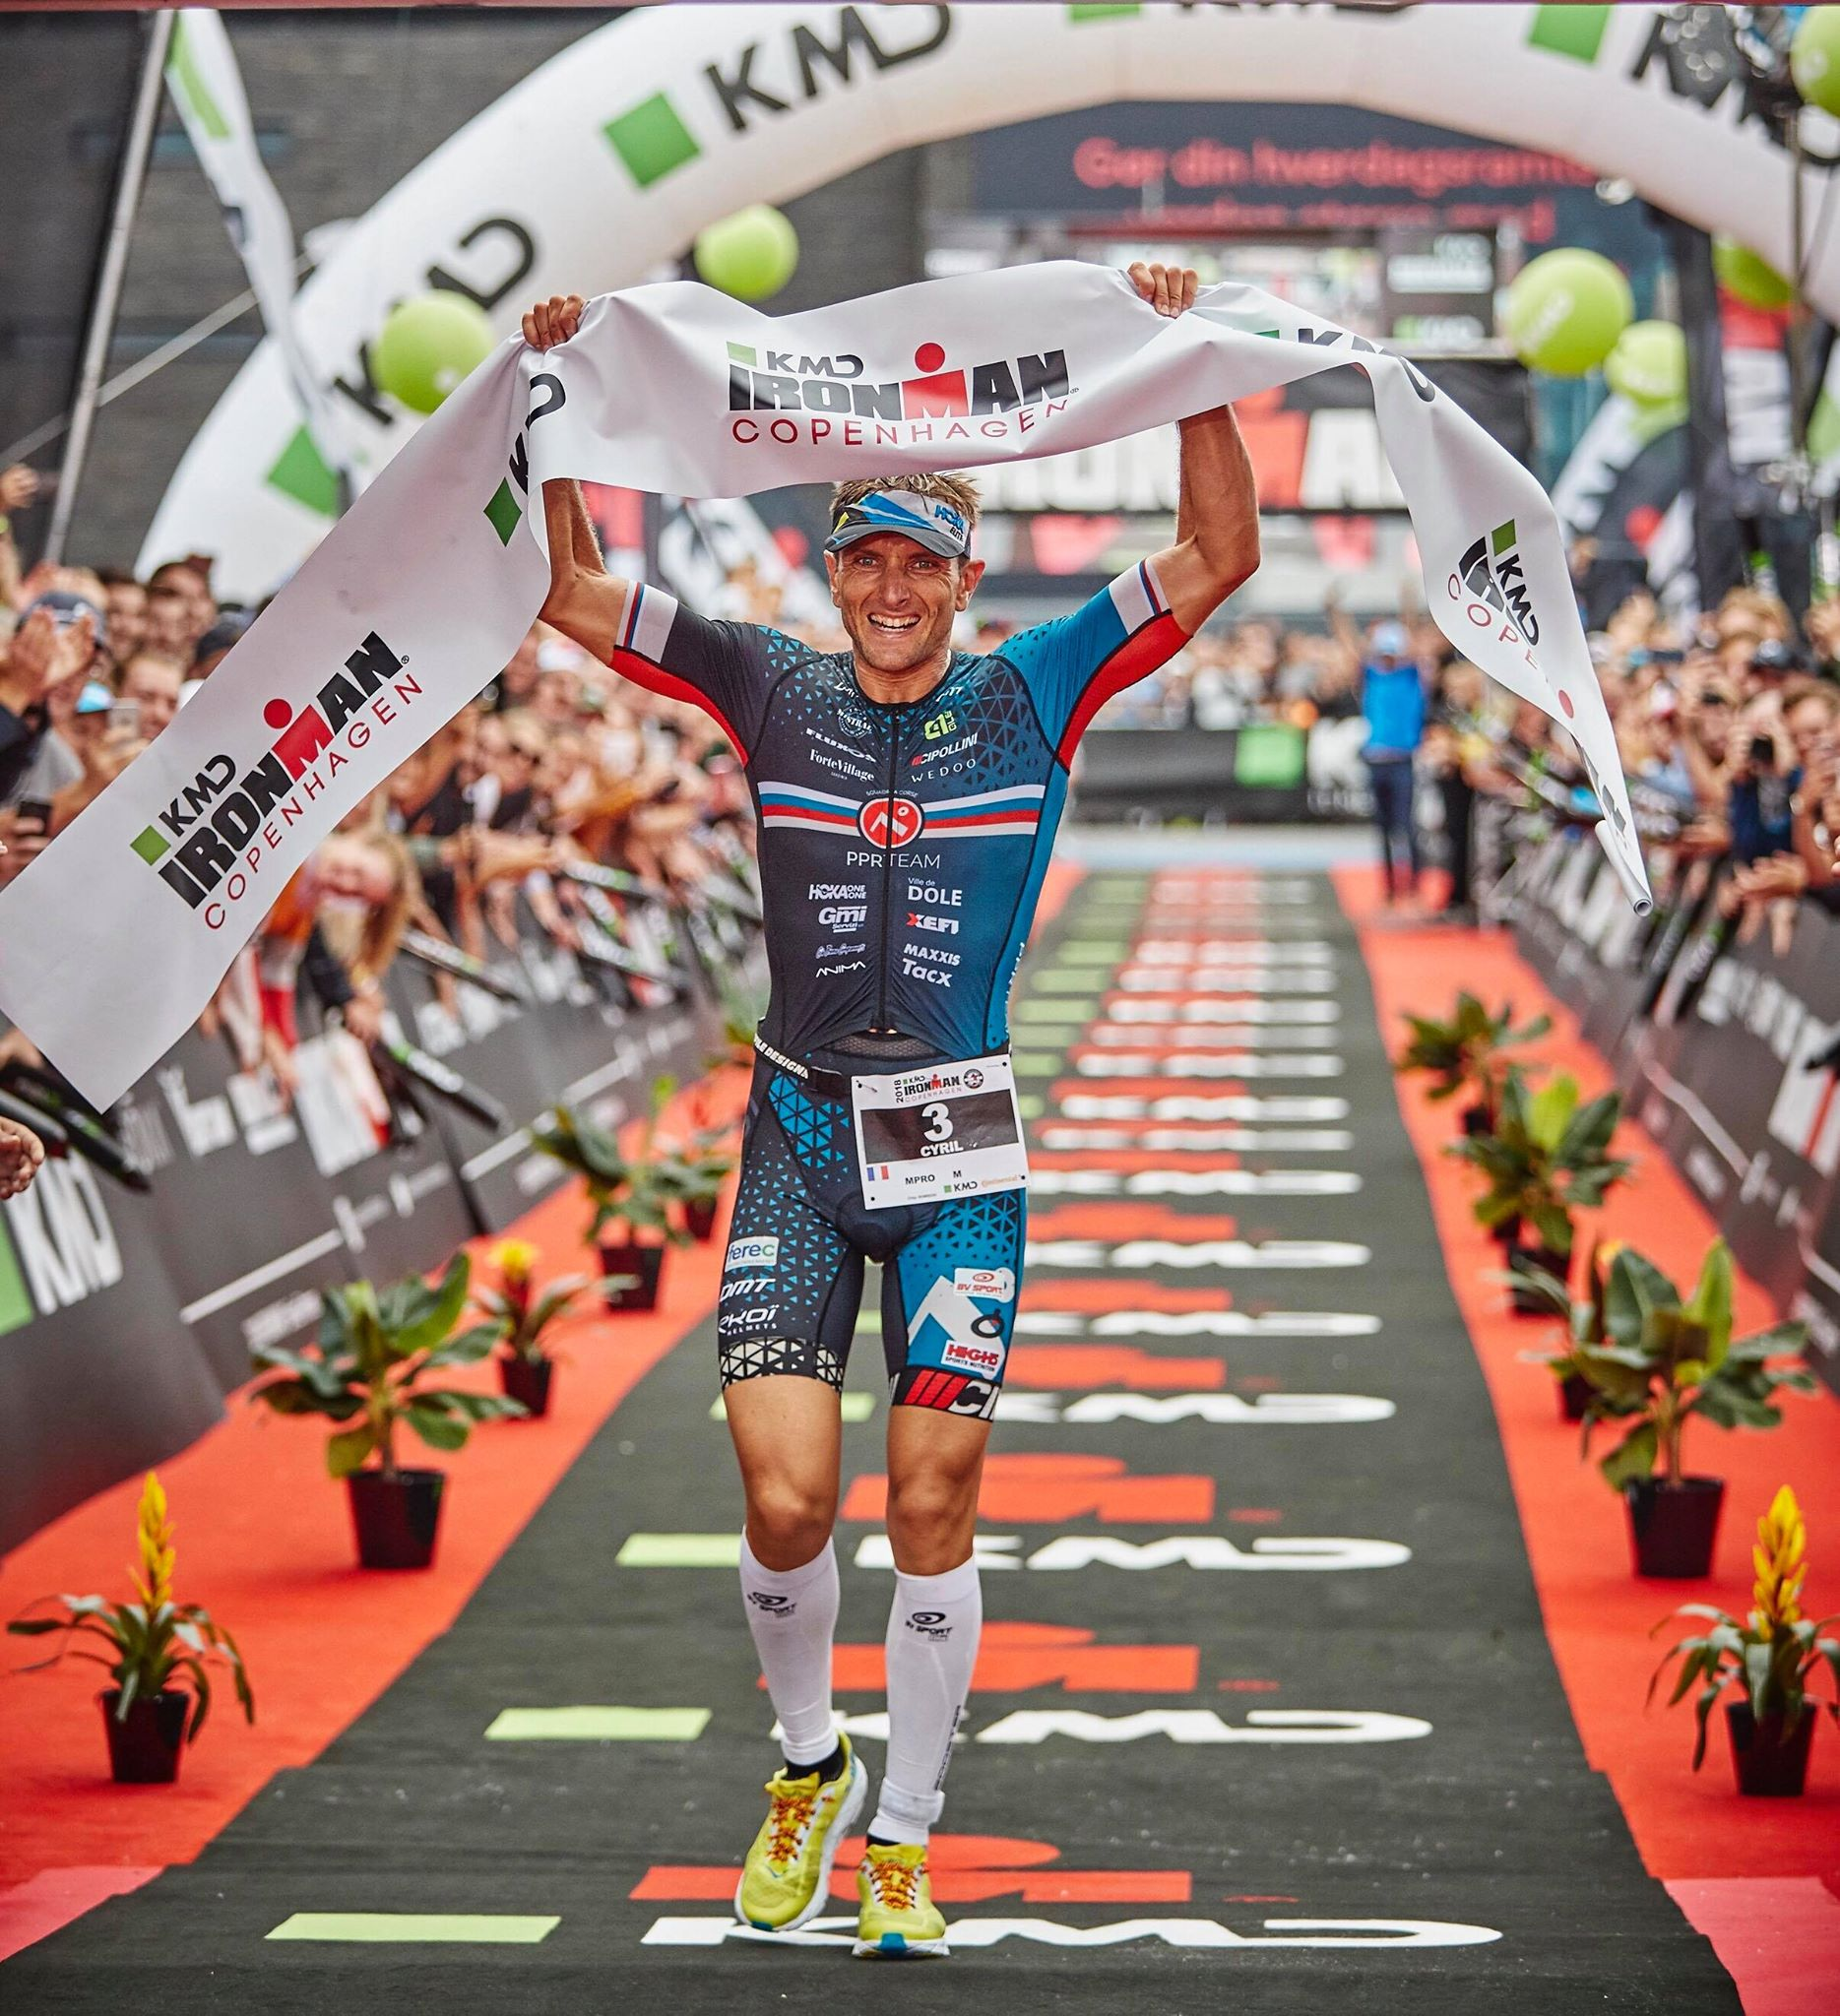 Ironman Copenhague 2018 Sub 8